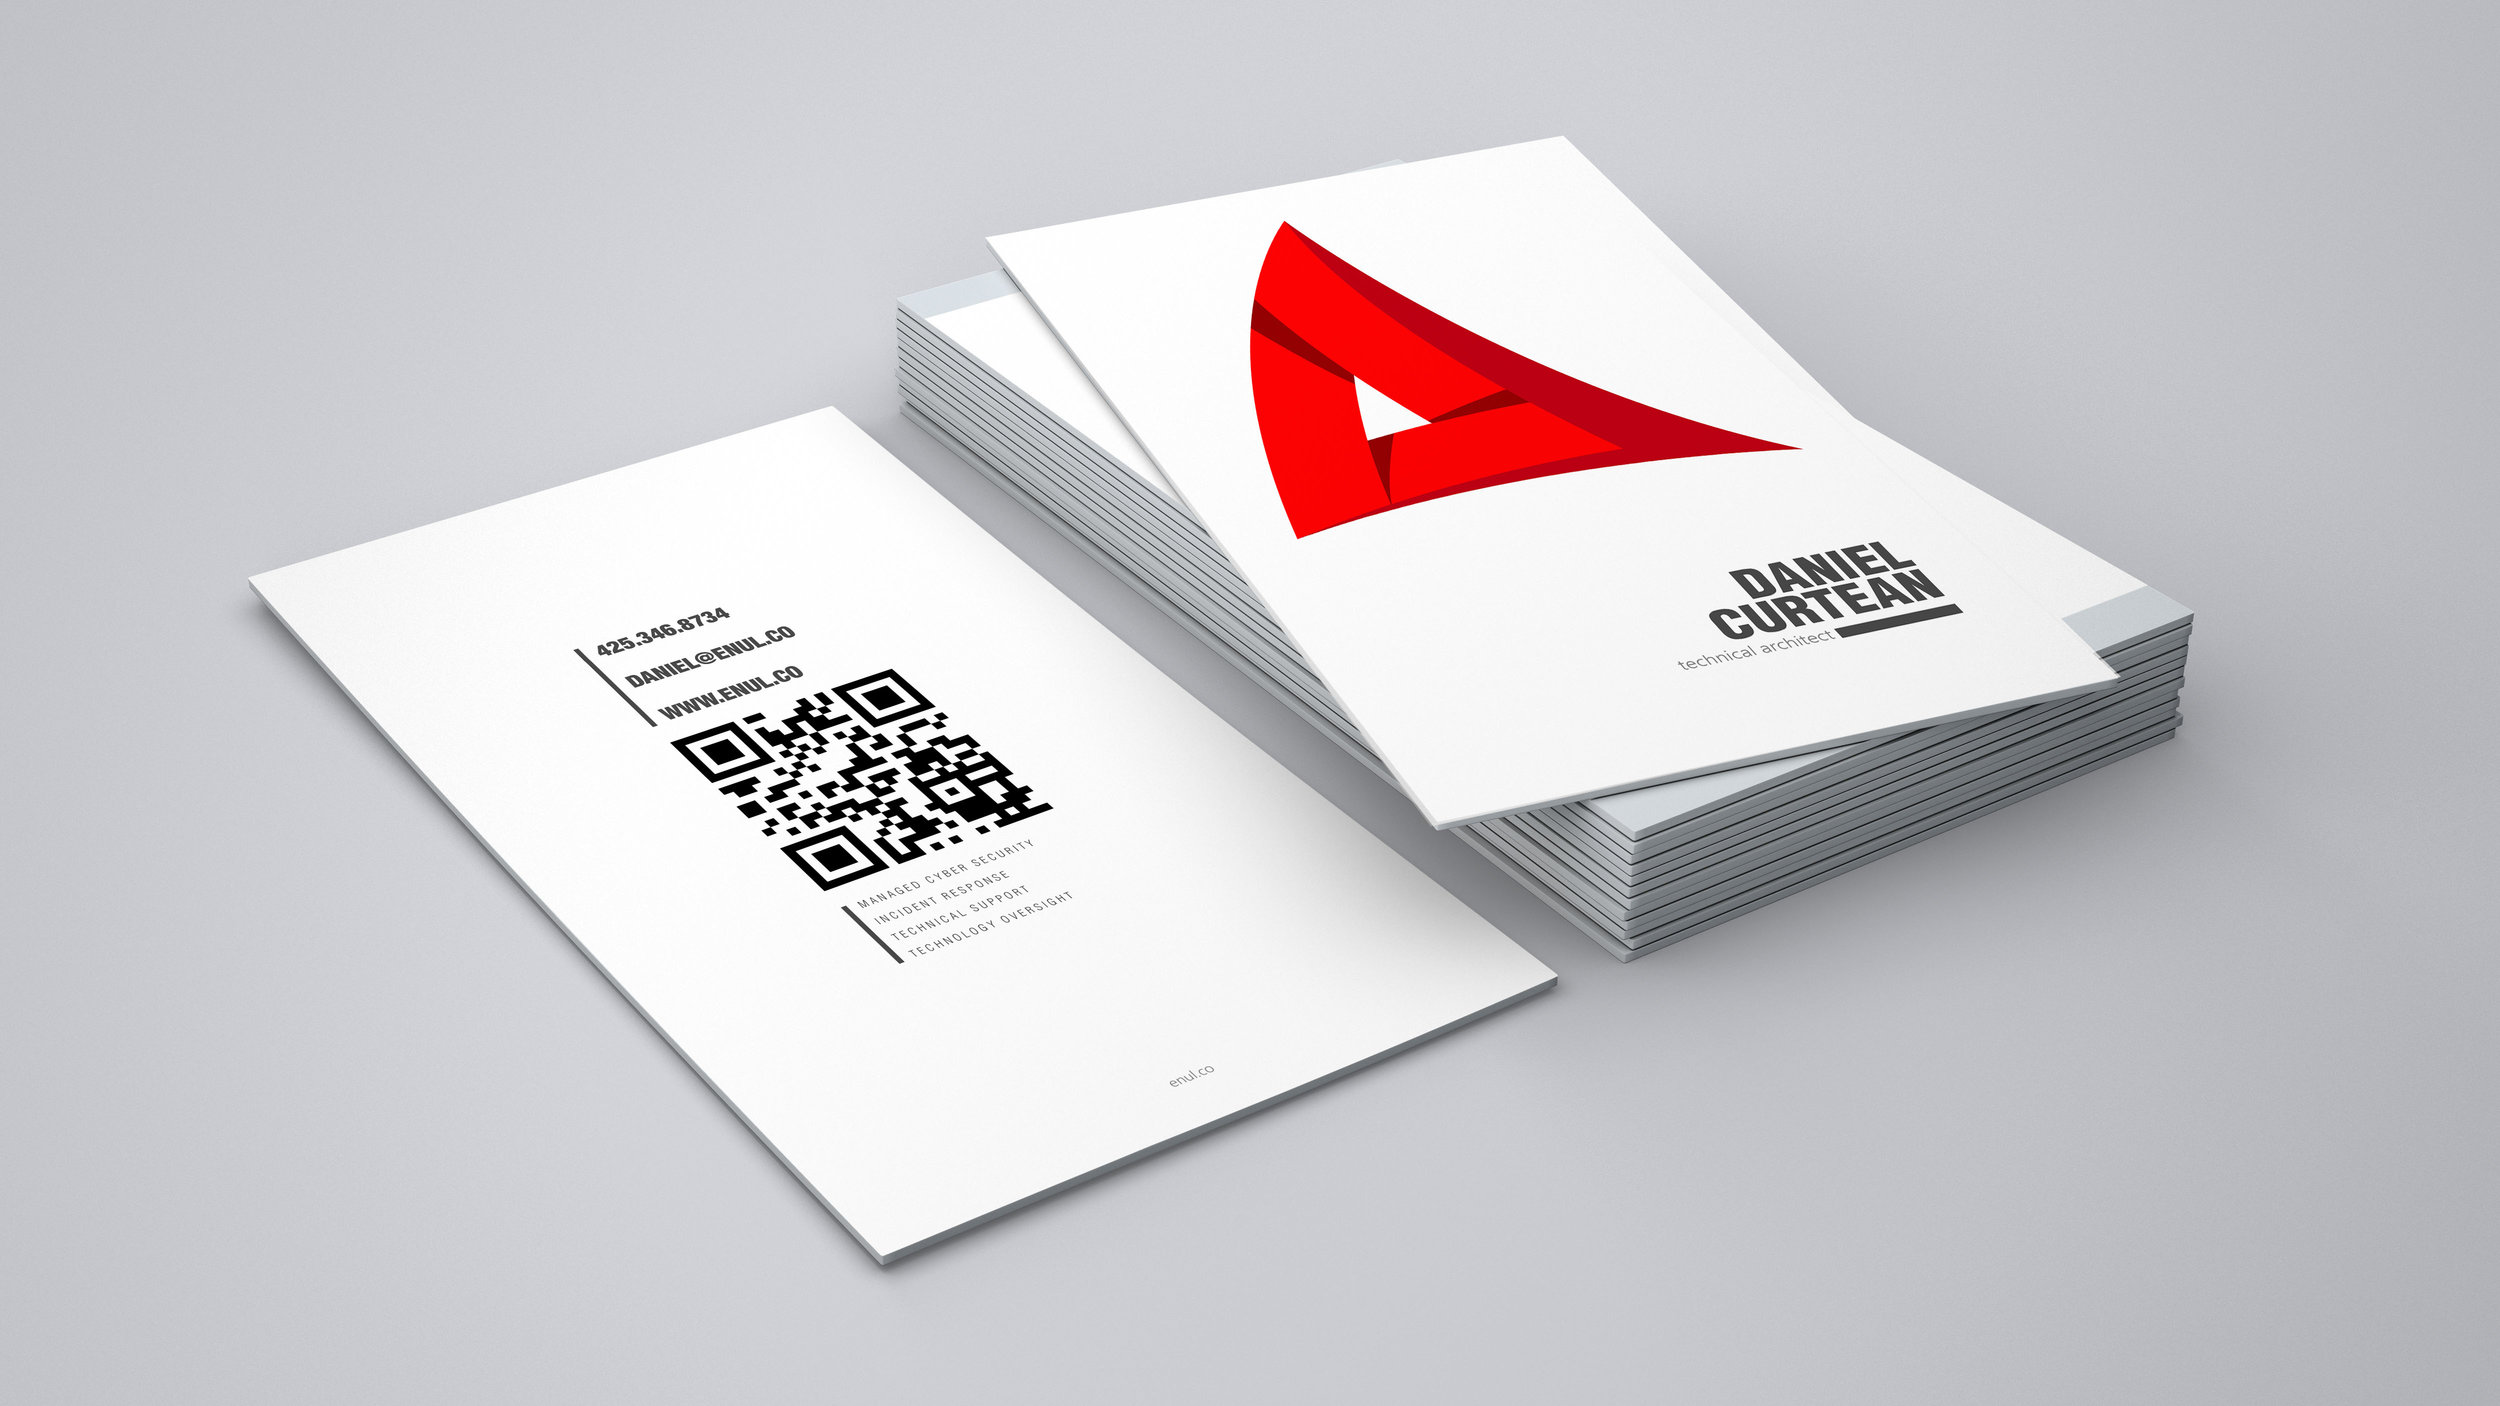 ENUL Business Cards Mockup.jpg